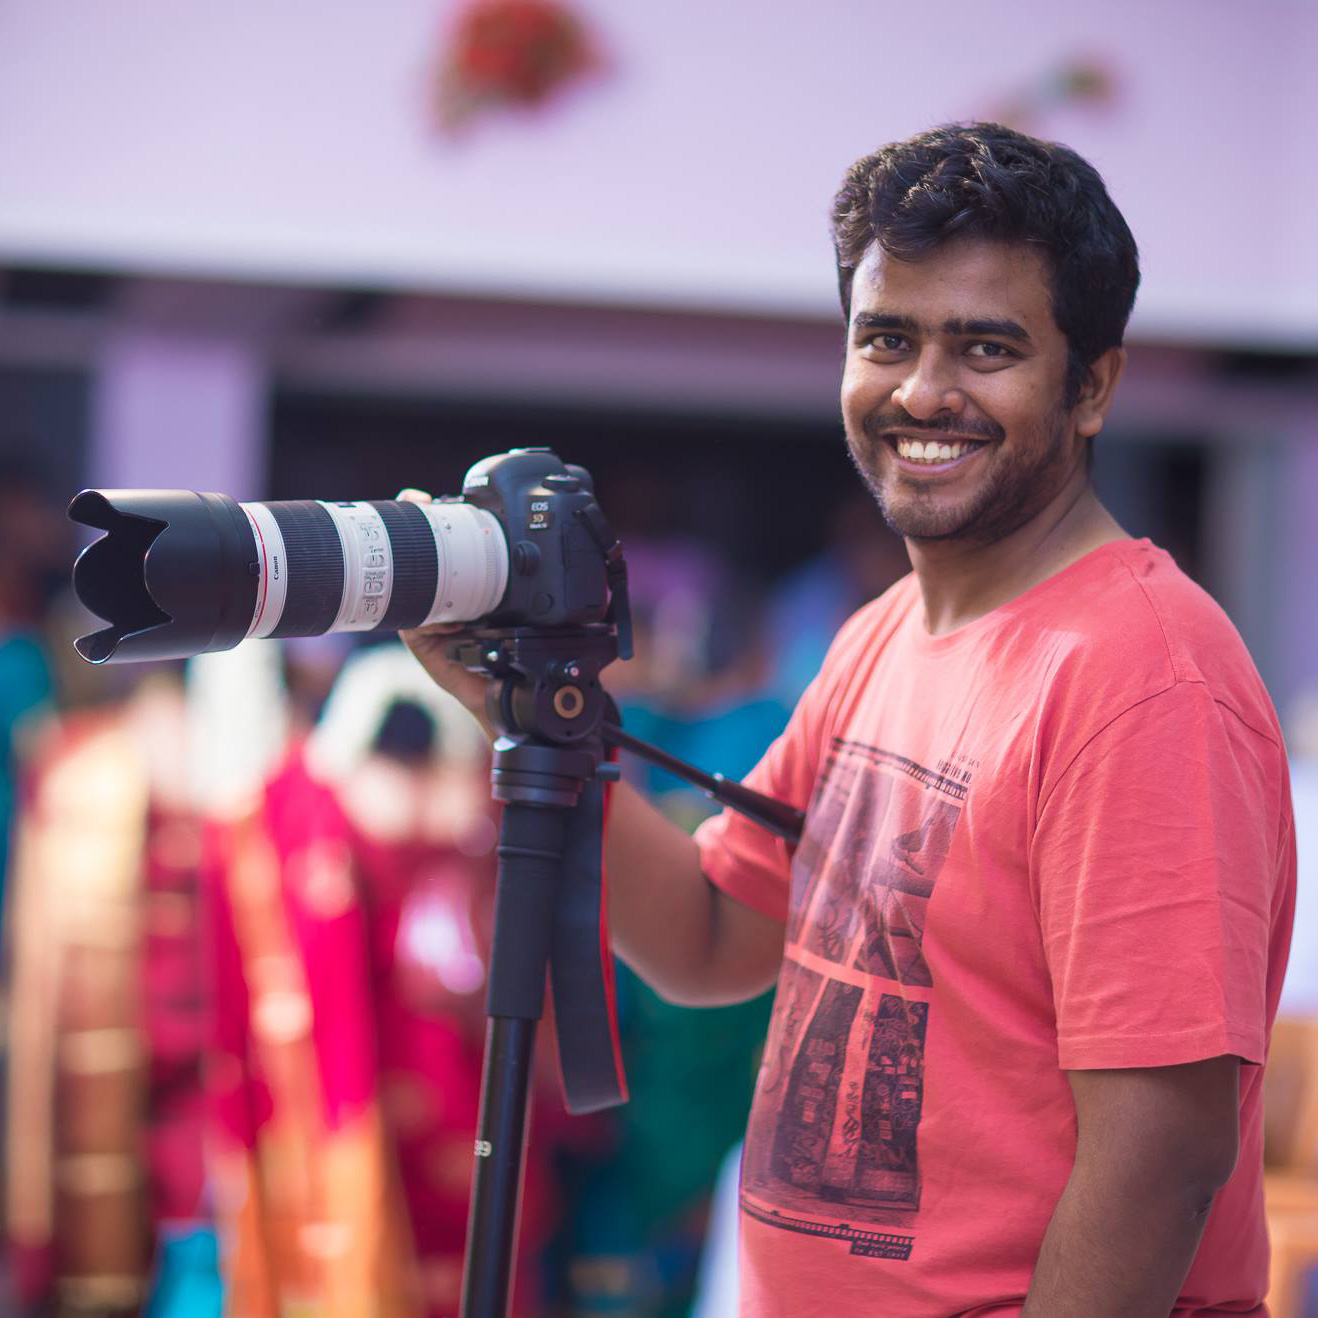 Kiran Kumar  is a professional wedding photographer from Chennai who is know for his energetic and colourful wedding photographs.  www.3rdeyestudio.in